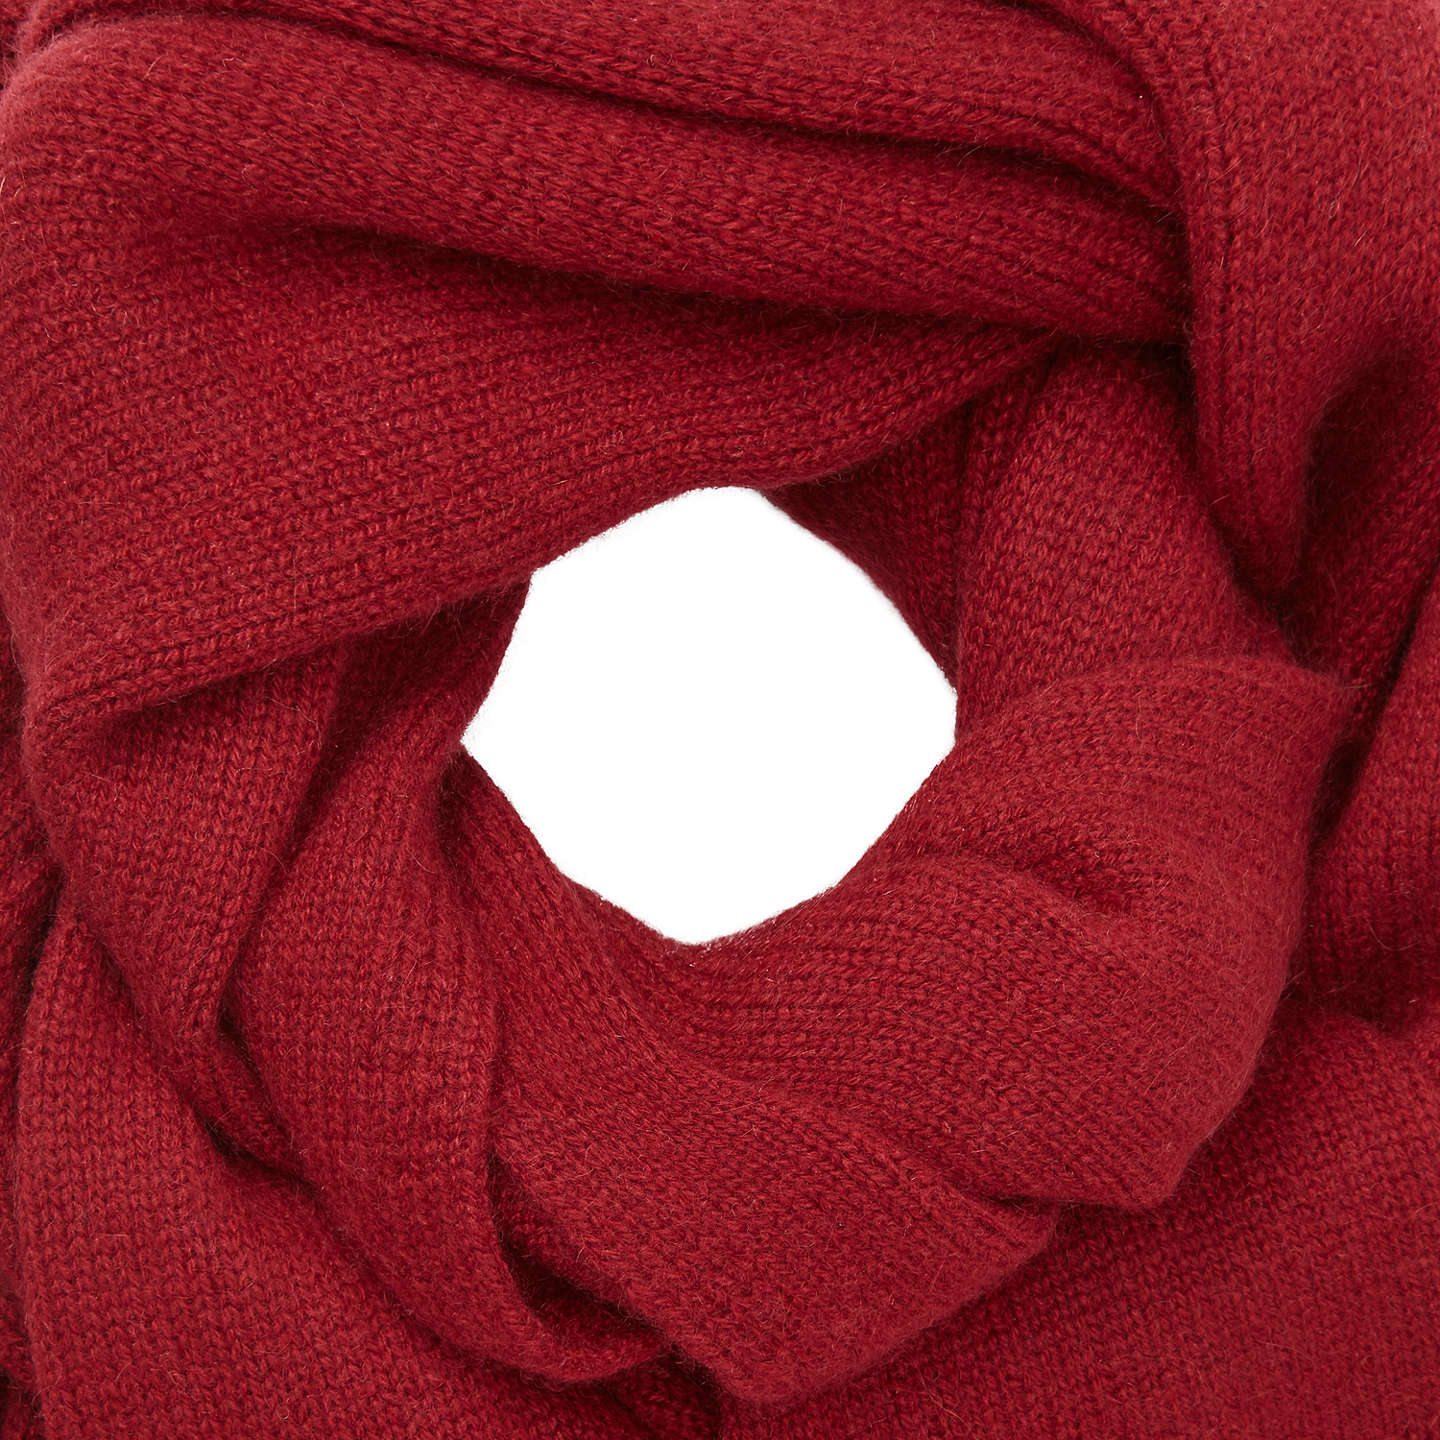 BuyJohn Lewis Cashmere Scarf, Red Online at johnlewis.com